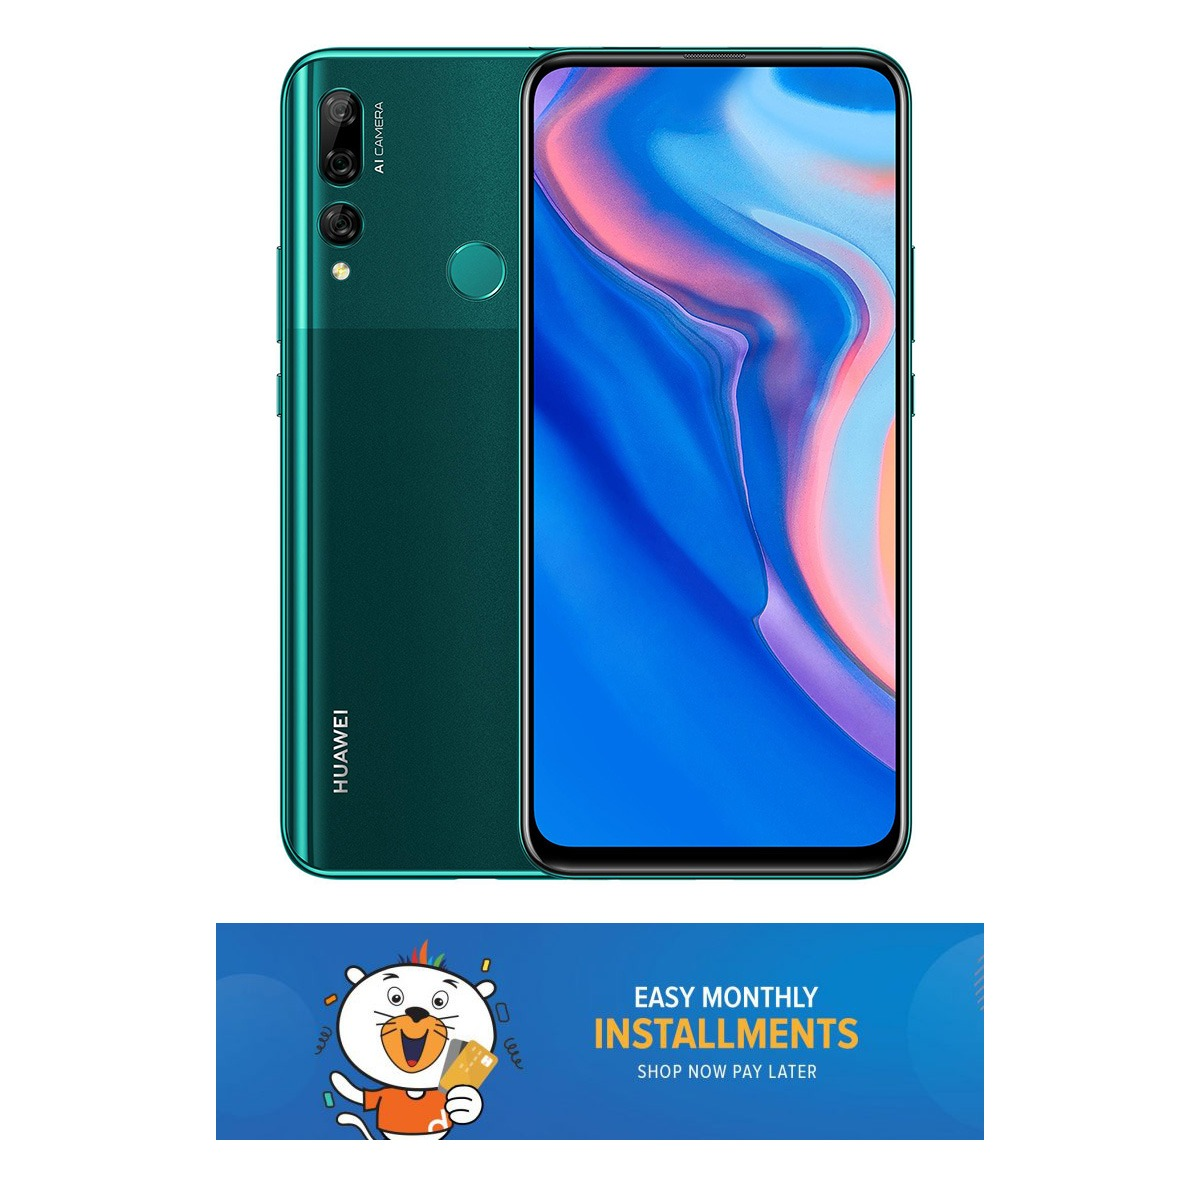 HUAWEI Y9 Prime(2019) - 6.59 UHD Display - 4GB RAM - 128GB ROM - Auto Pop-up Camera - Fingerprint Sensor